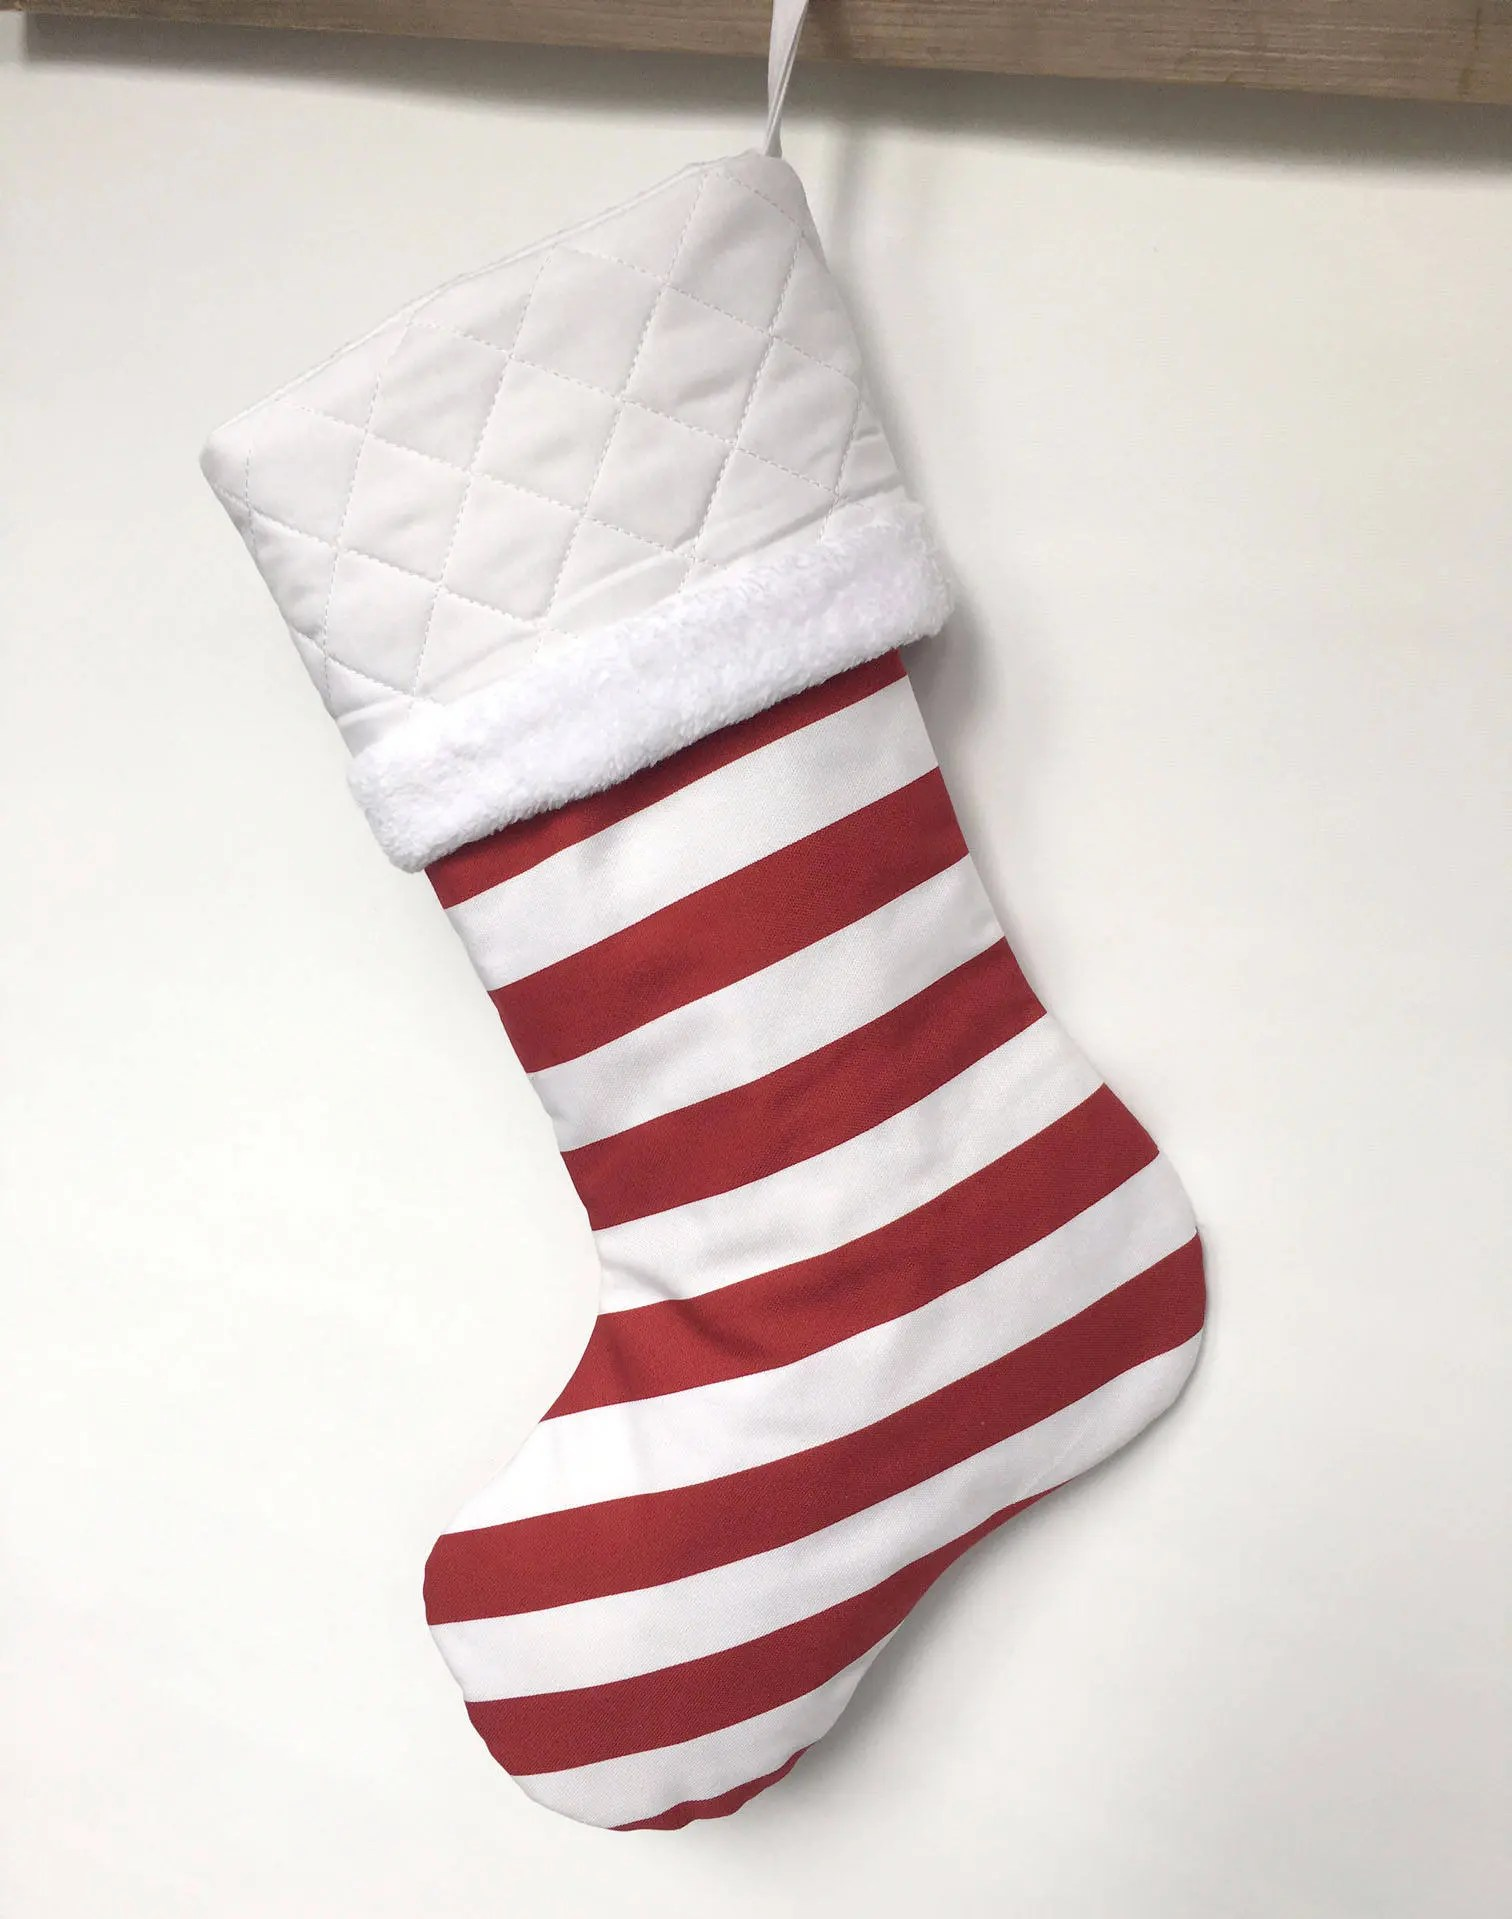 Red and White Stripes  Personalized Christmas Stockings  image 3